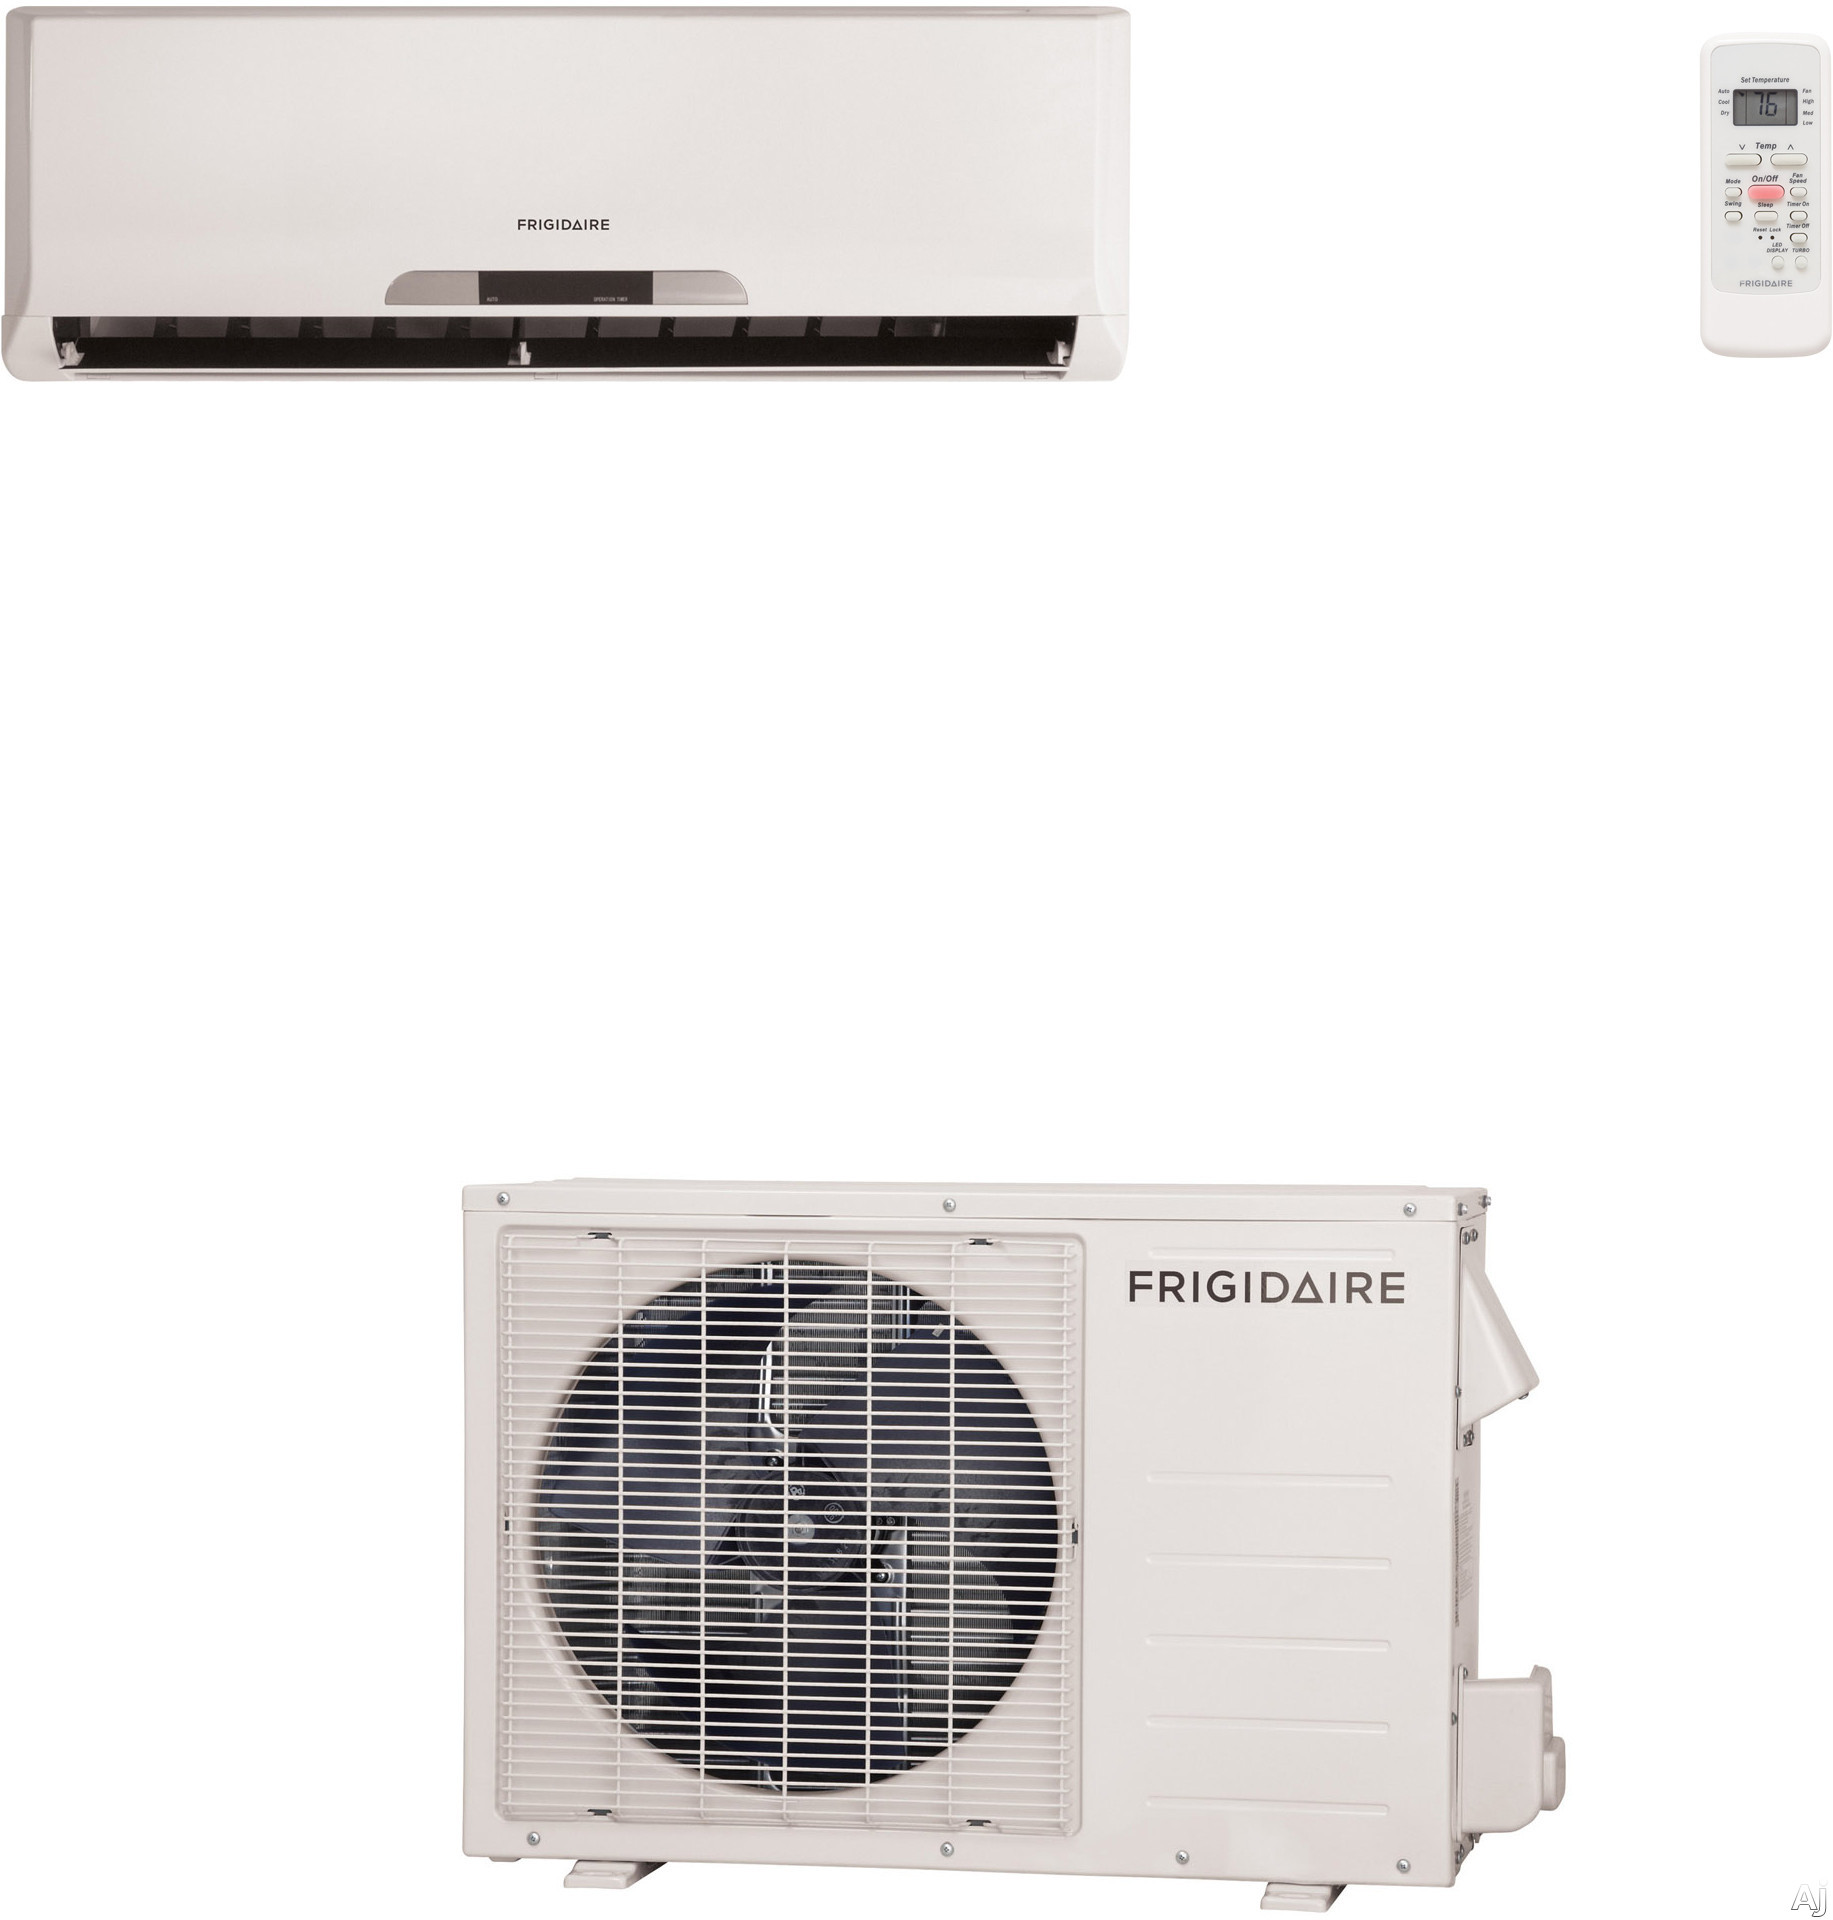 Frigidaire FRS123LS1 12,000 BTU Single Zone Wall-Mounted Mini Split Air Conditioning System with 550 sq. ft. Cooling Area, R-410A Refrigerant, 330 CFM, Advance Filtration System and Included 16' Refrigeration Line Set (FRS123LW1 Indoor/FRS123LC1 Outdoor)